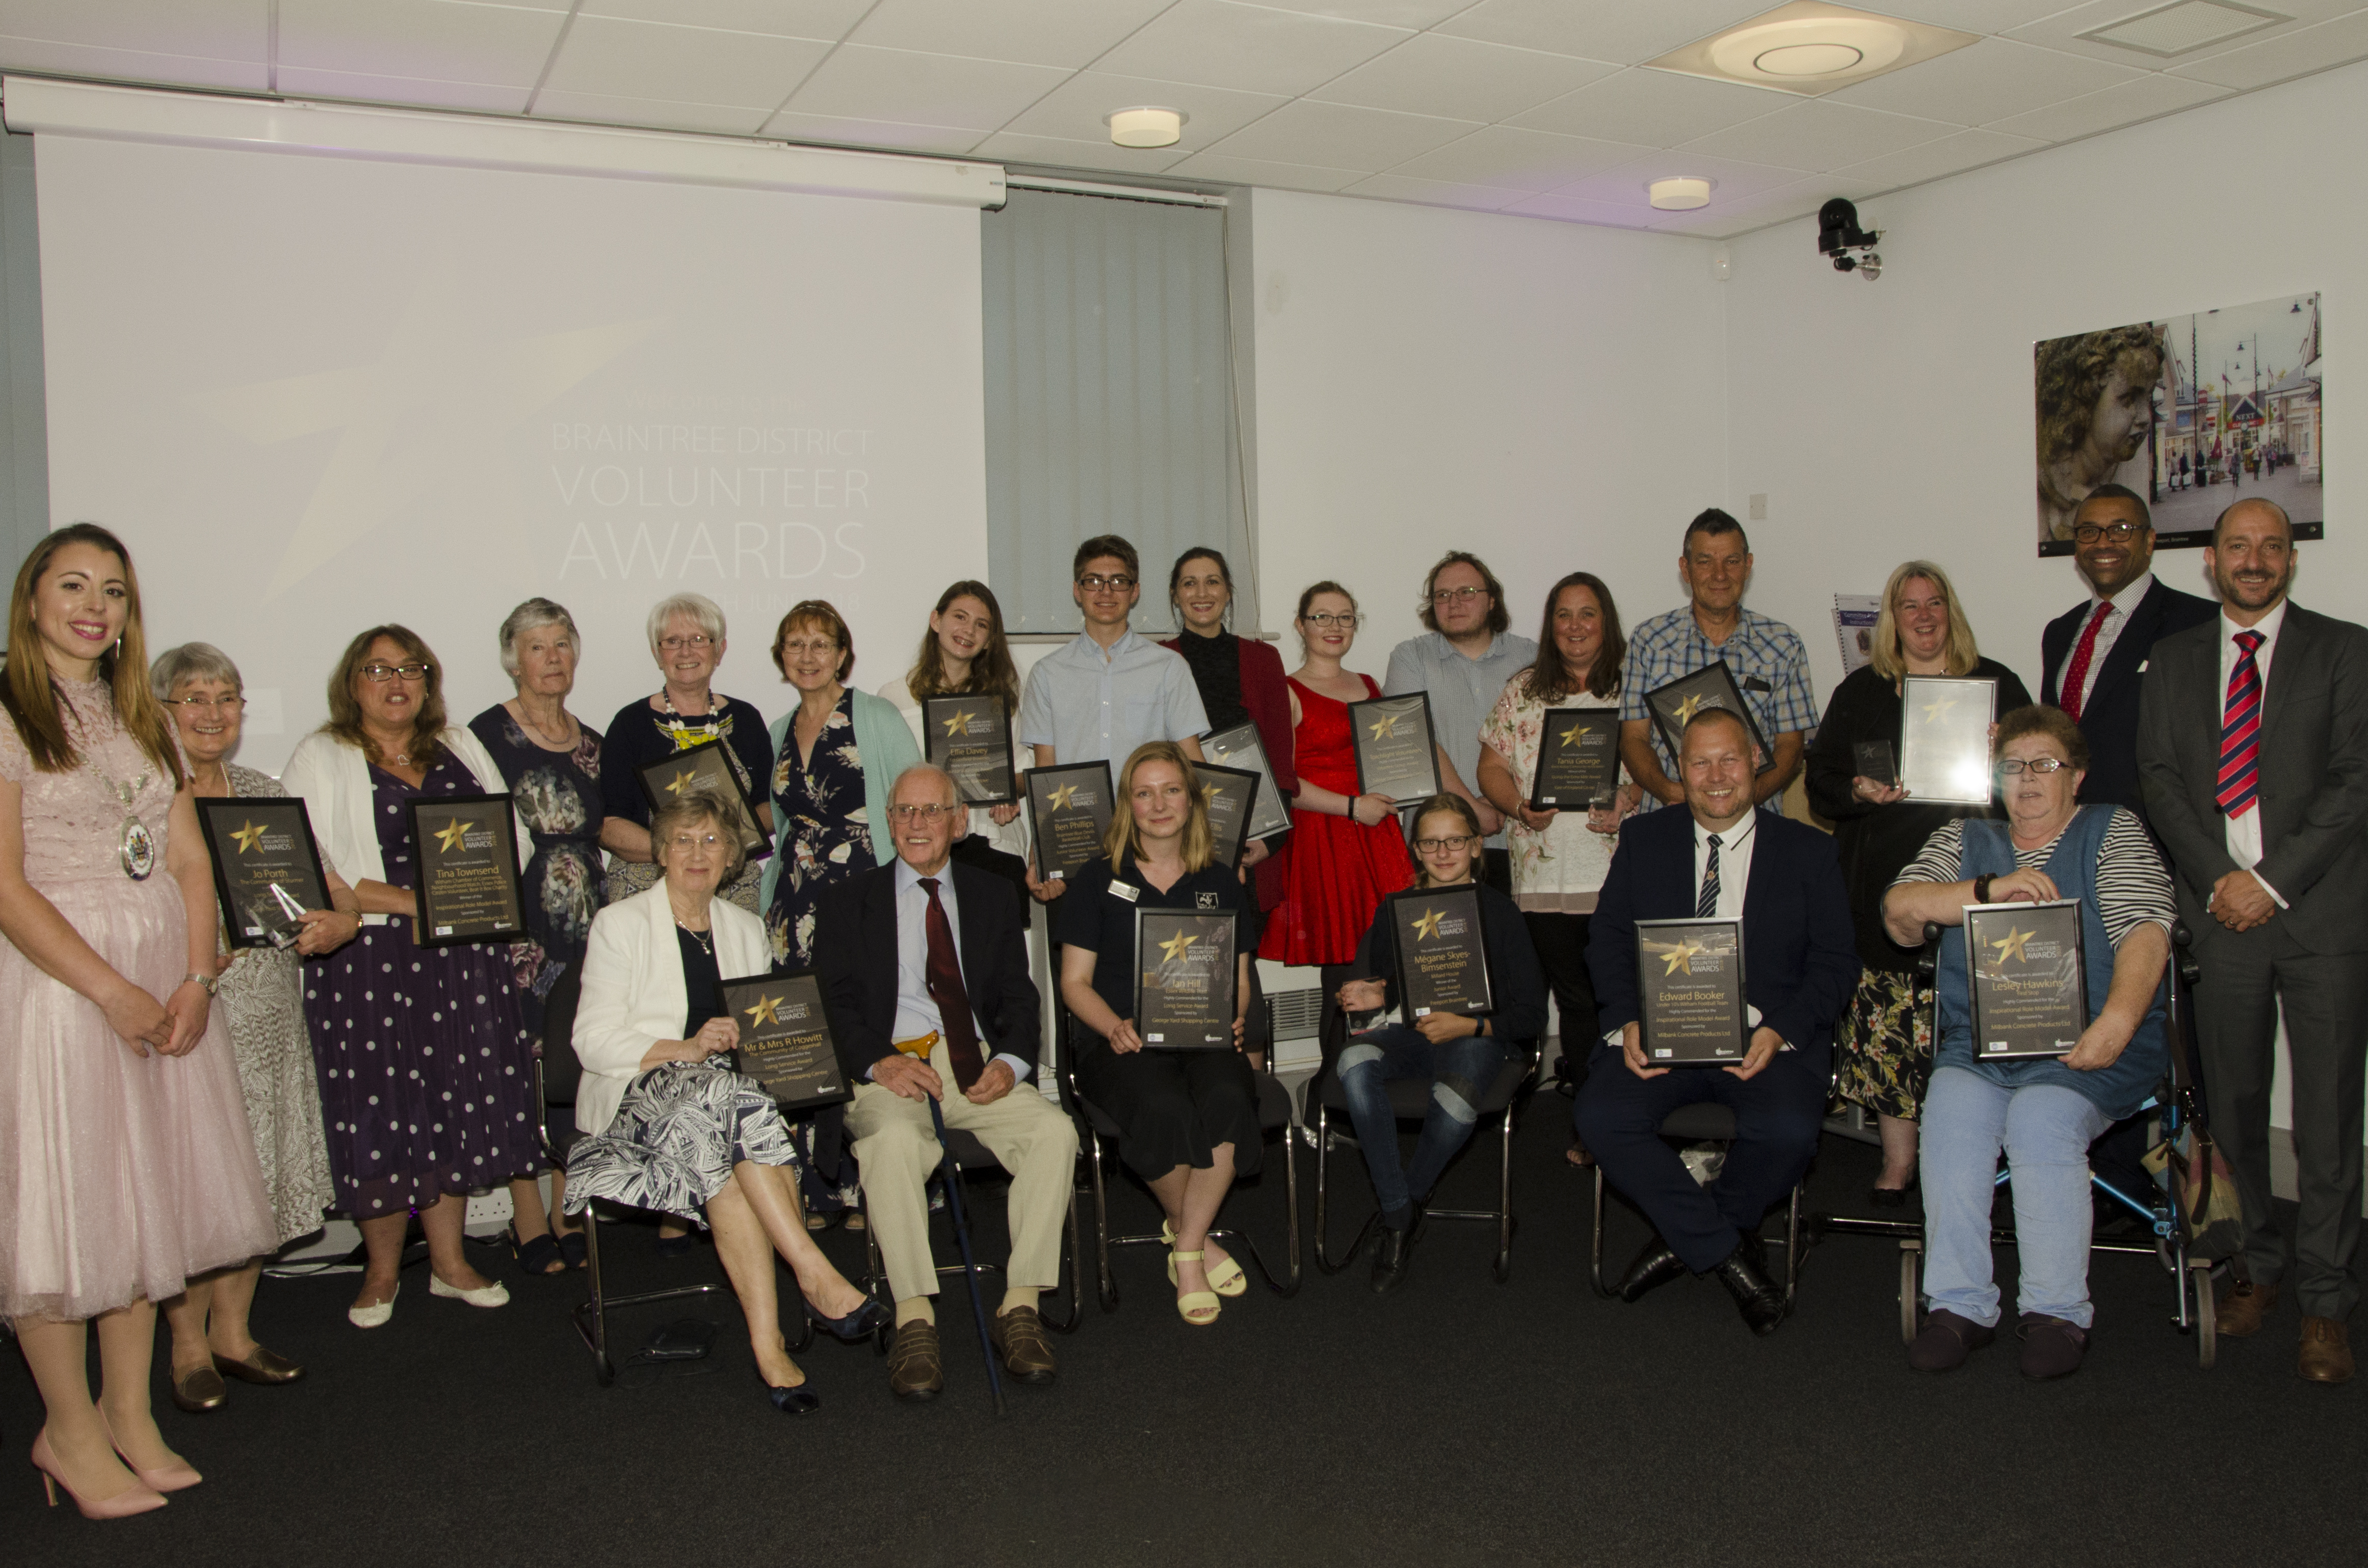 Volunteer Awards - Group photo of winners and highly commended with Councillors and Braintree MP.